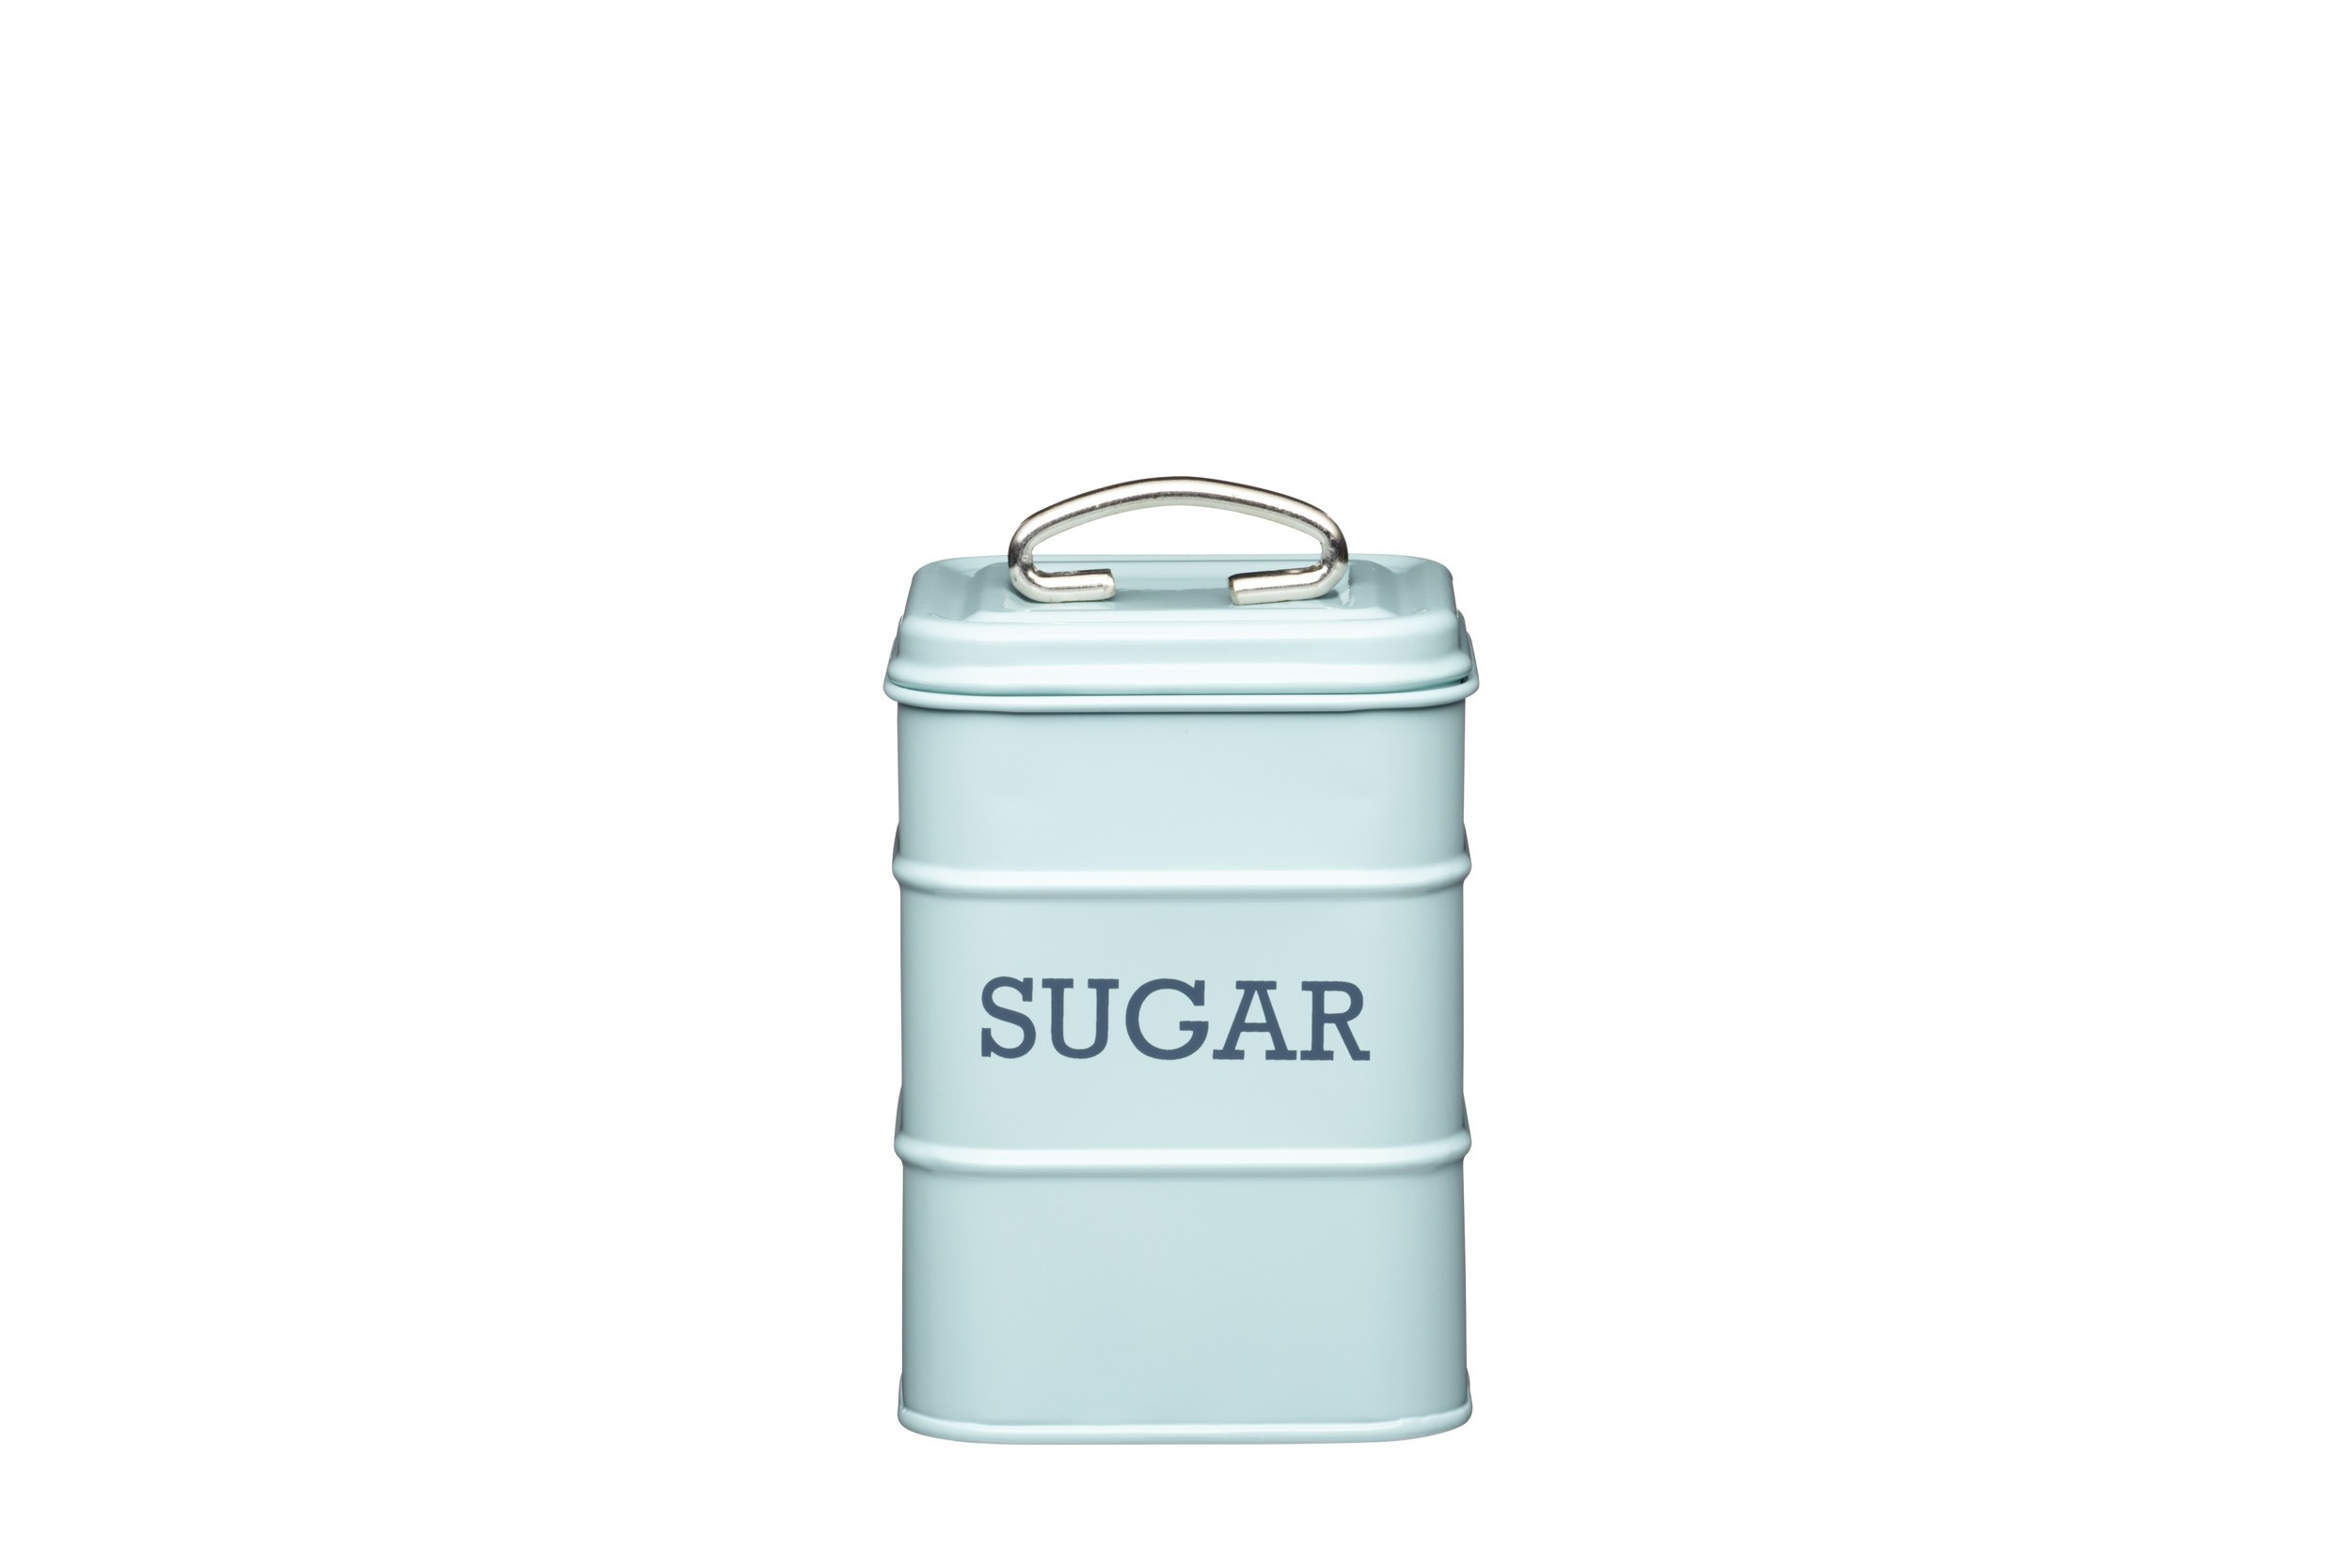 Kitchen Craft Living Nostalgia Sugar Canister Blue 11cm X 17cm